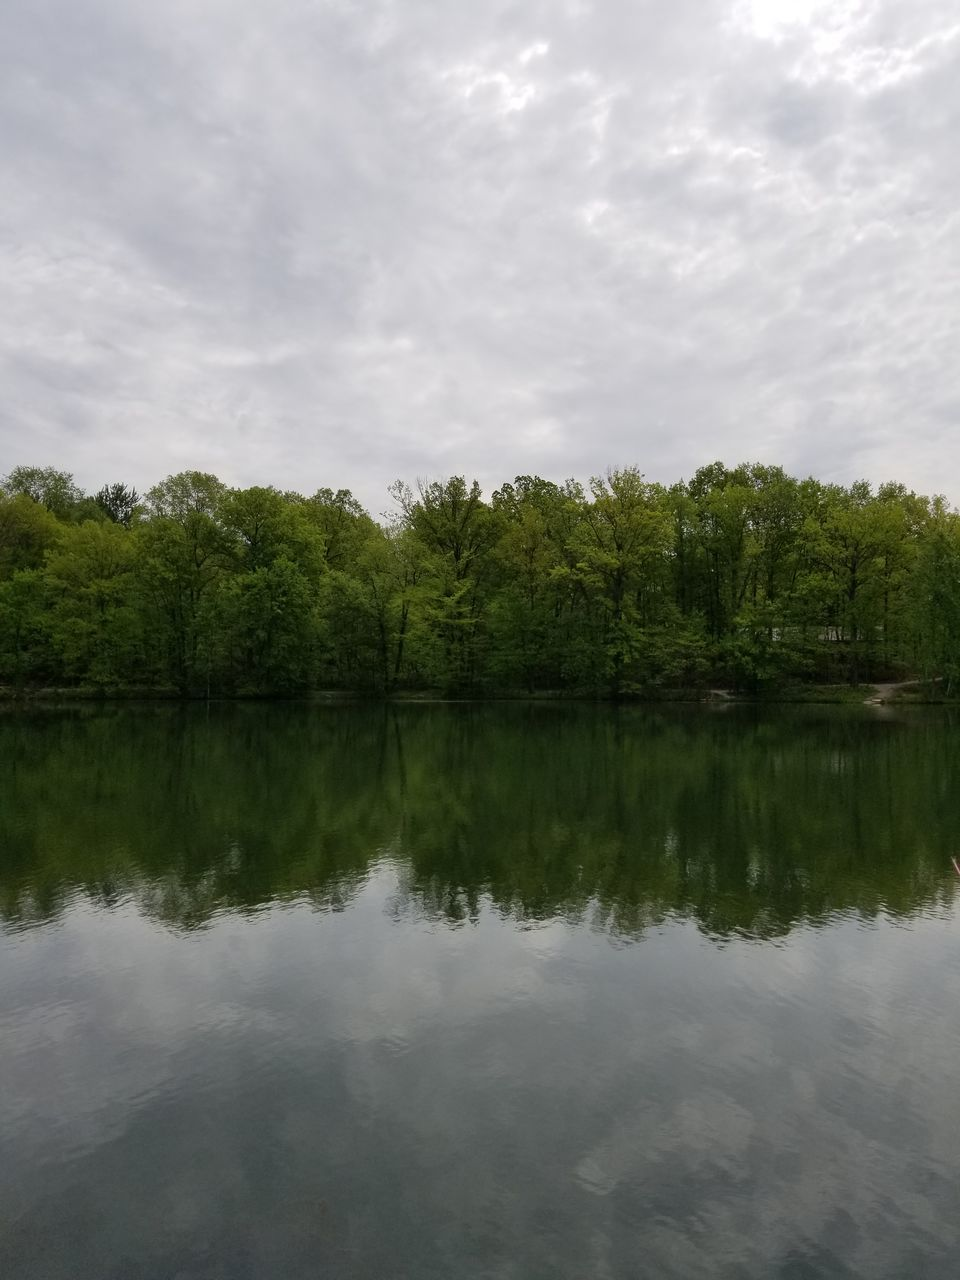 reflection, water, tree, lake, nature, tranquility, beauty in nature, tranquil scene, day, sky, no people, outdoors, cloud - sky, scenics, green color, waterfront, growth, forest